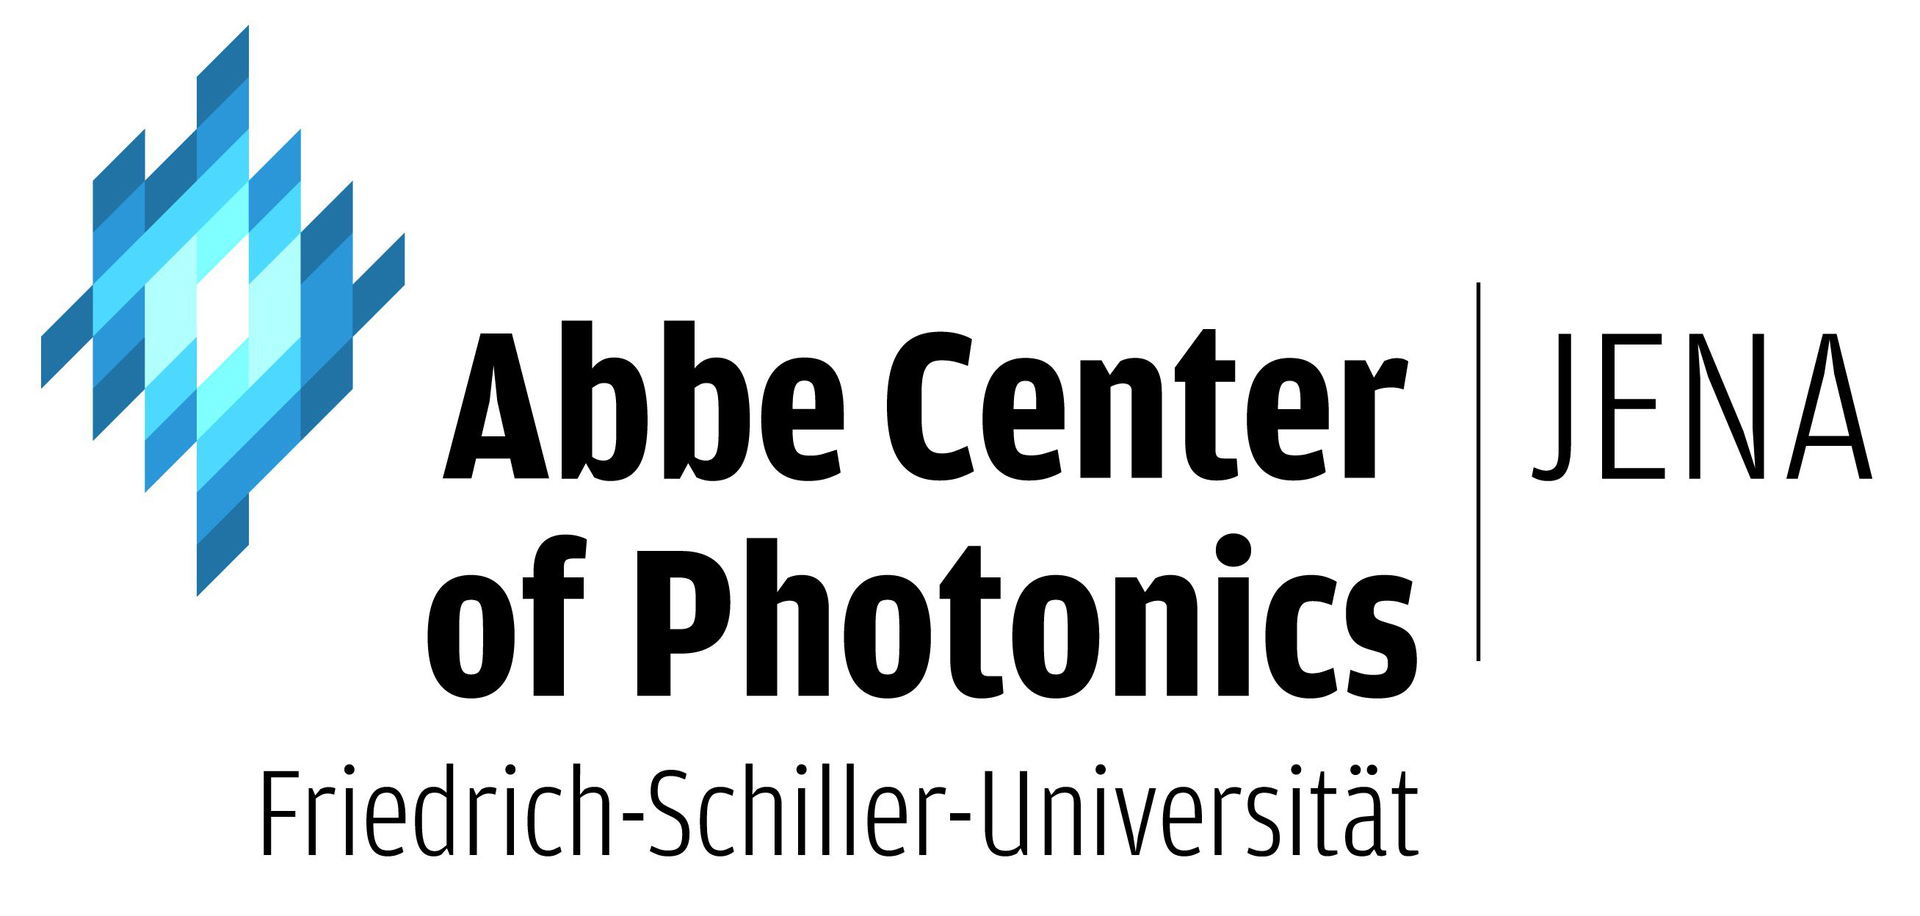 Abbe Center of Photonics